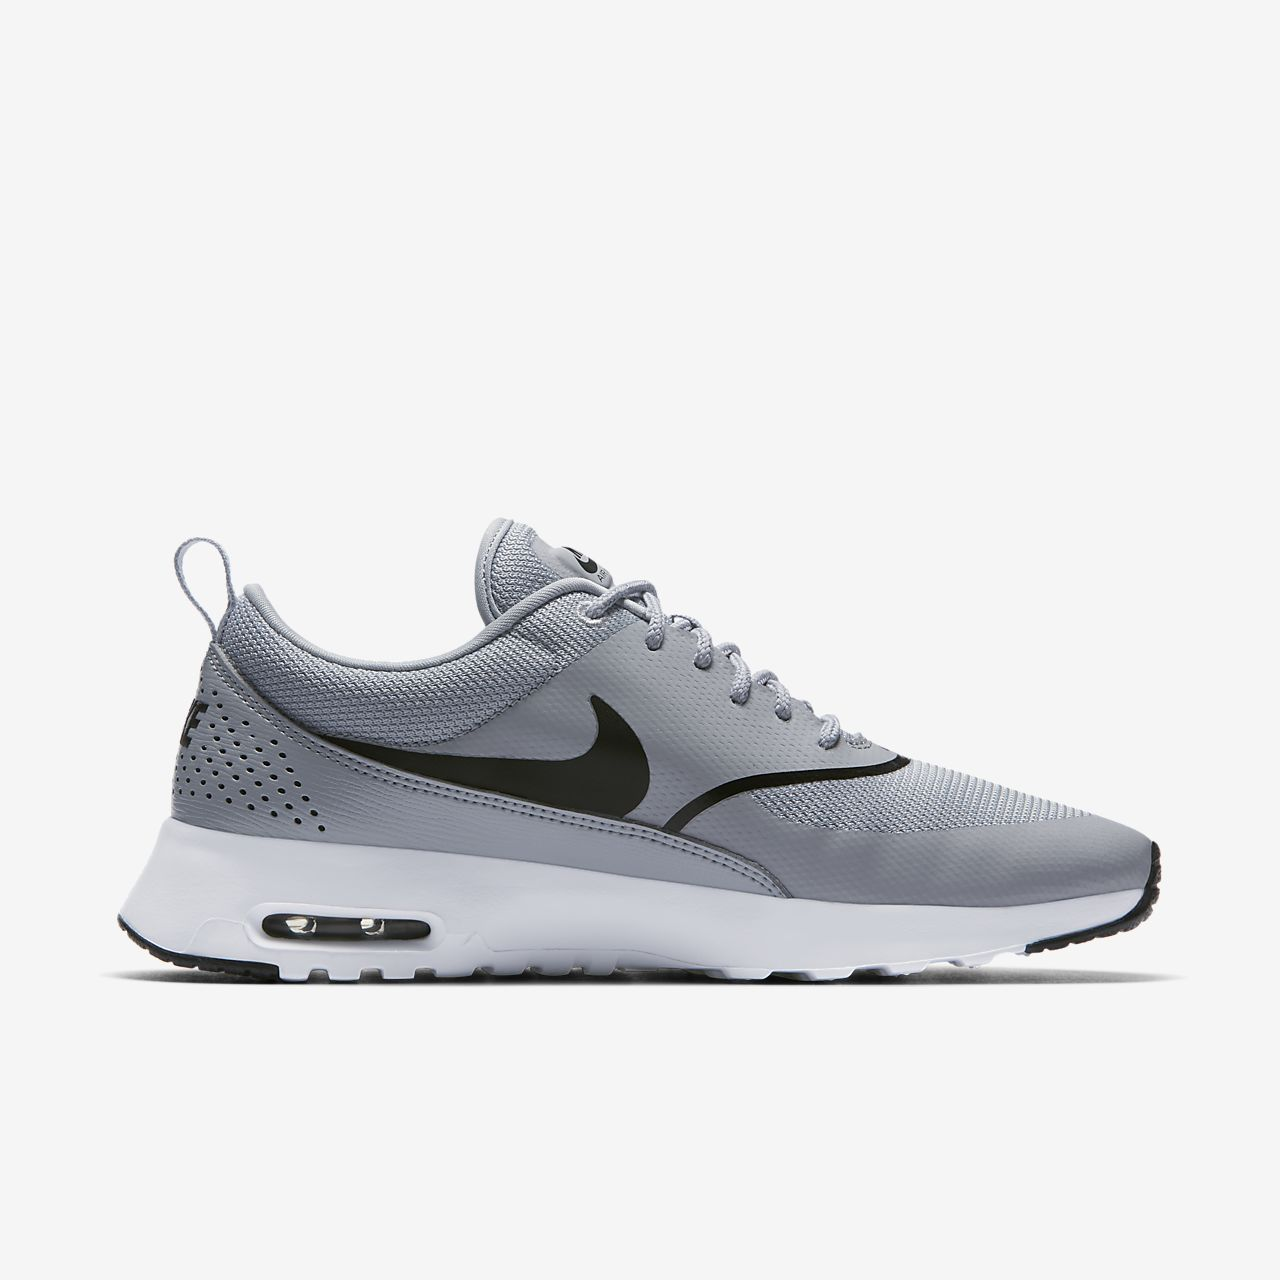 sports shoes 047a8 ee090 ... Chaussure Nike Air Max Thea pour Femme